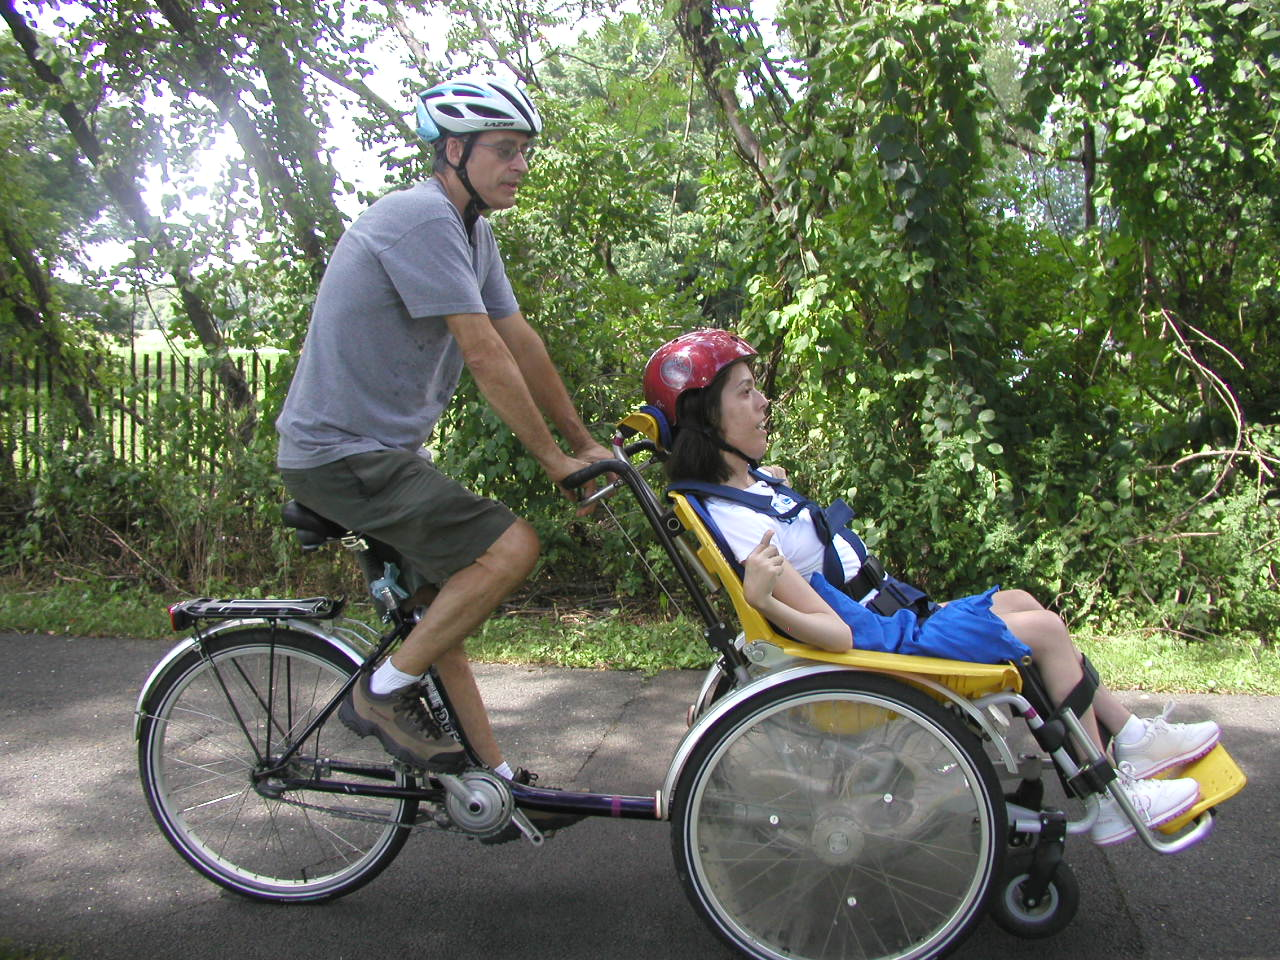 The Bike Chair Old Metal Lawn Chairs Everyone Outdoors Duet Wheelchair Tandem Allows A New Drivers Should Test Ride First By Riding It With No One In So You Can Feel How Reacts Before Place Someone Front Seat